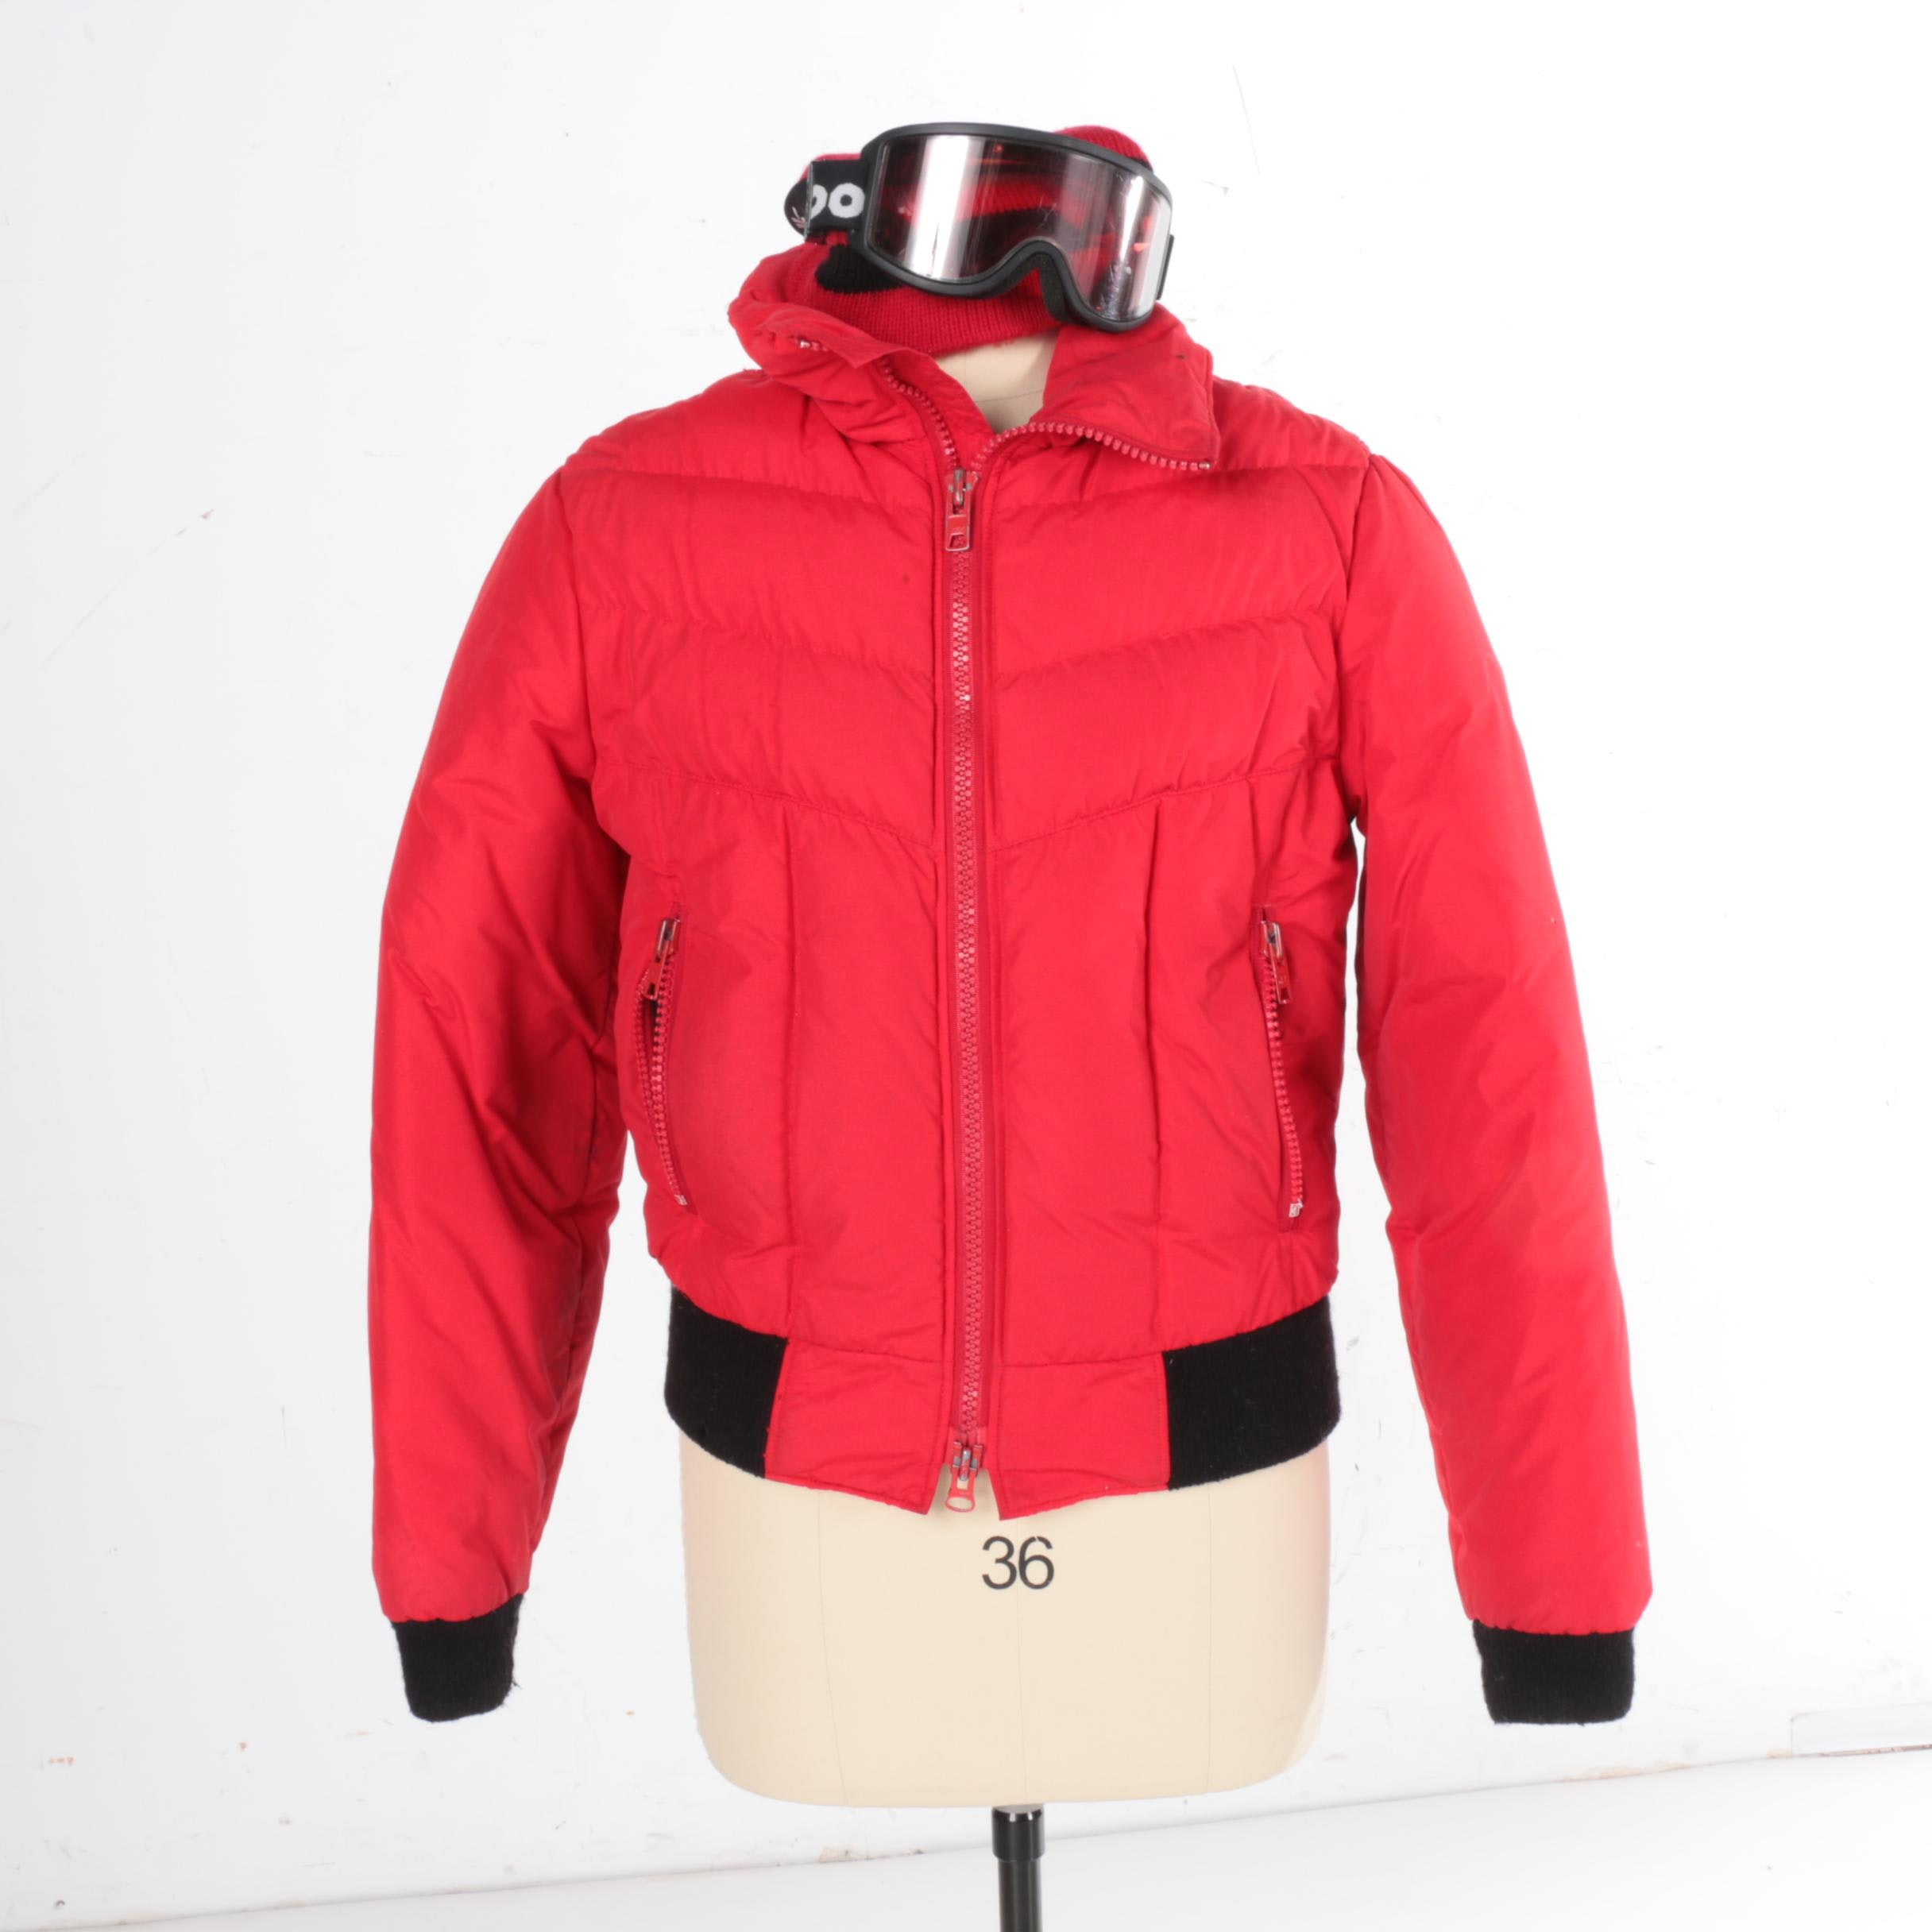 CB Sports Red Ski Jacket with Hat and Bollé Goggles